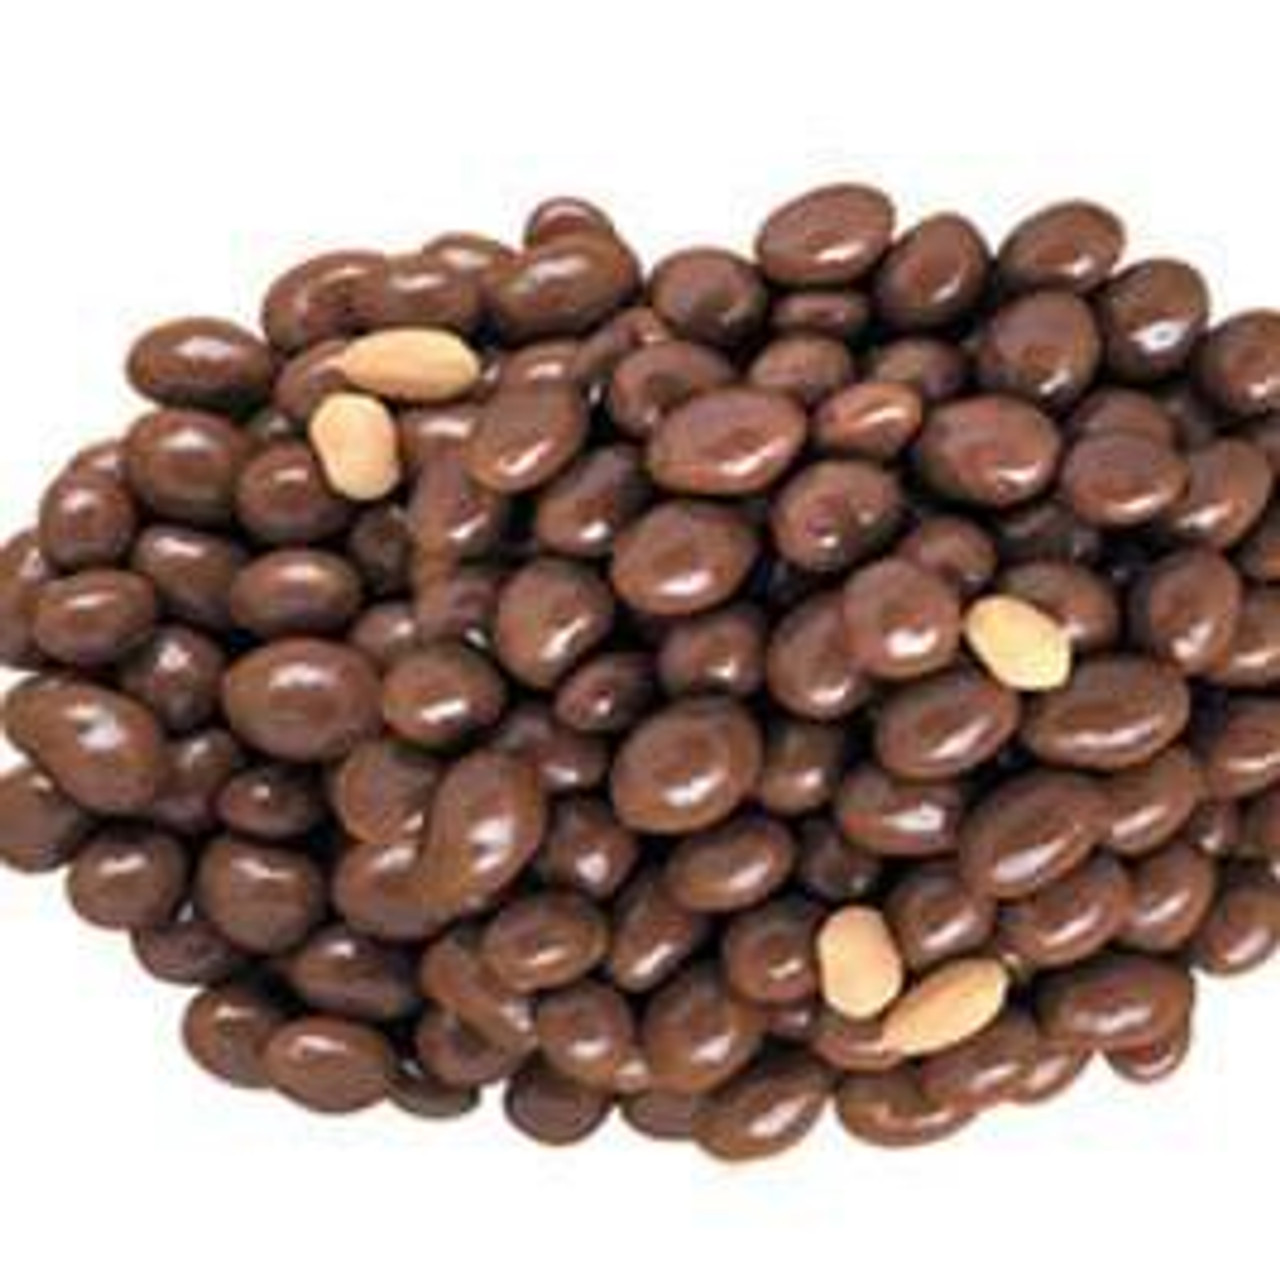 Chocolate Cover Peanuts